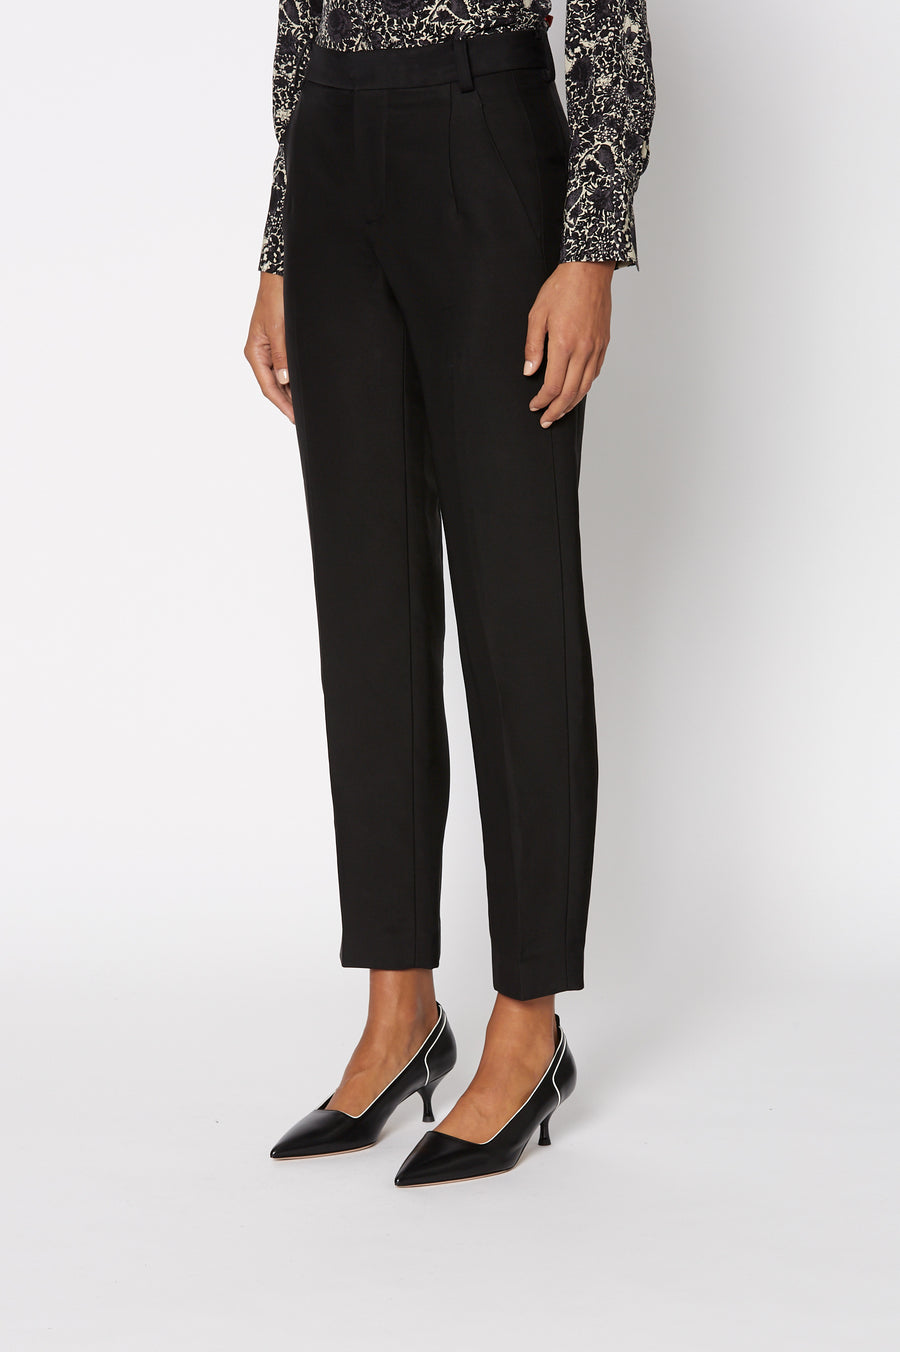 Classic Trouser, tailored high waist, zip and button fastening, belt loops. Color black